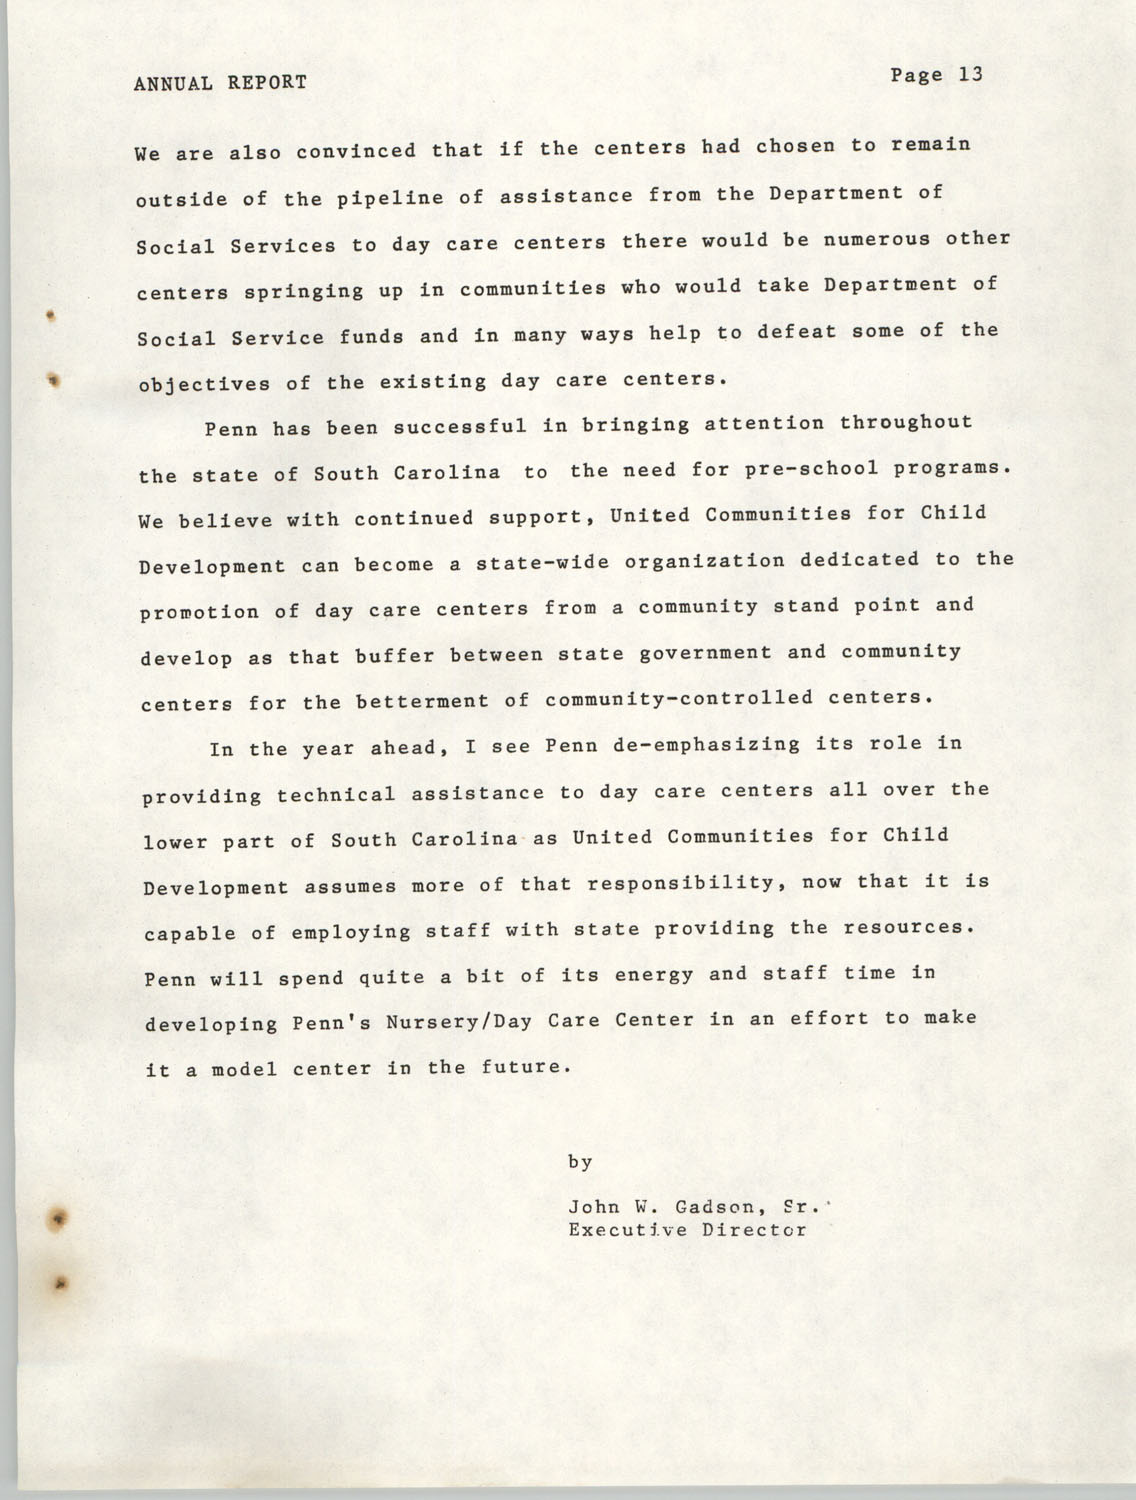 Annual Report, Penn Community Services, 1974, Page 13